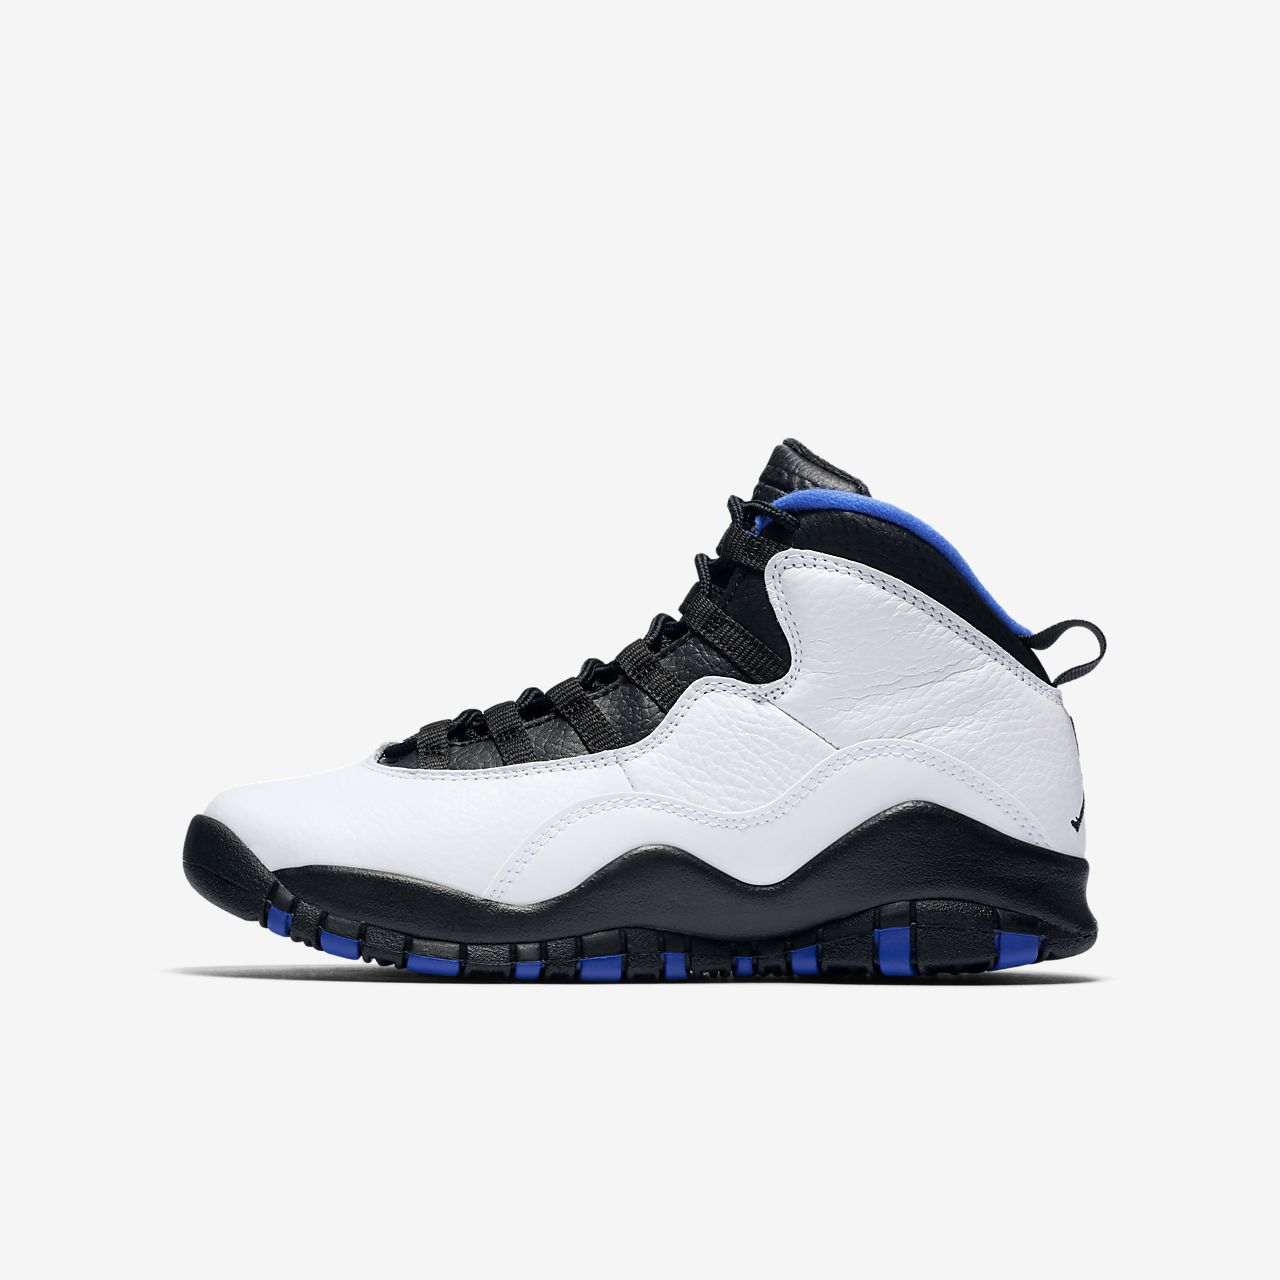 ea6b0c59de692 Air Jordan Retro 10 (3.5y-7y) Big Kids  Shoe. Nike.com